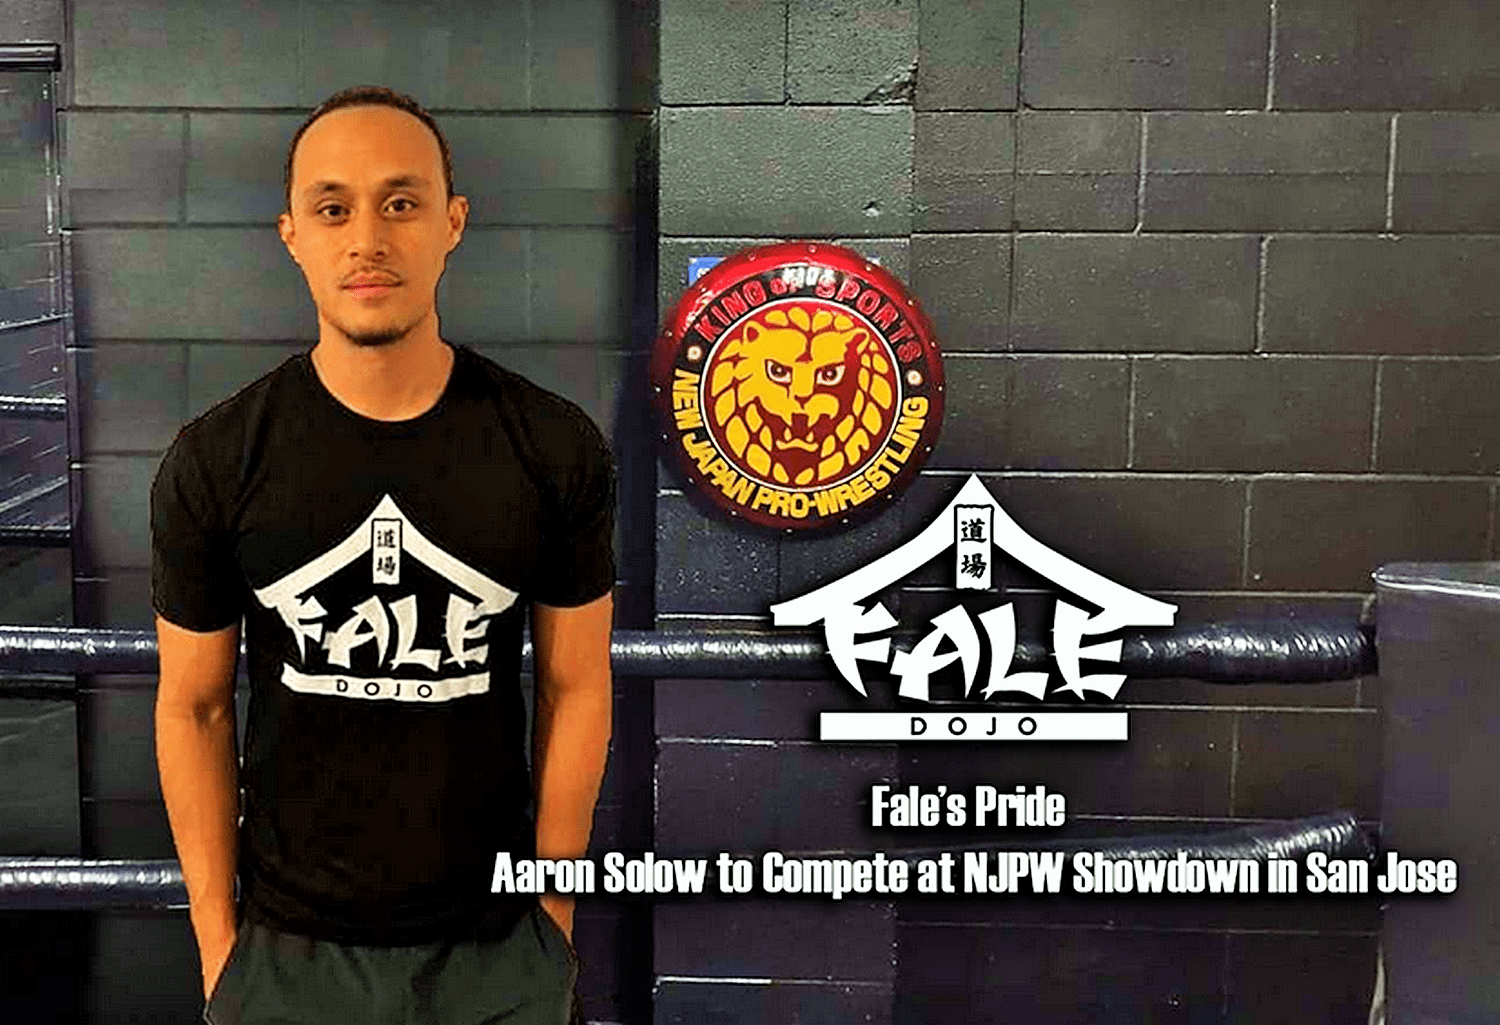 Fale's Pride – Aaron Solow to Compete at New Japan Showdown in San Jose